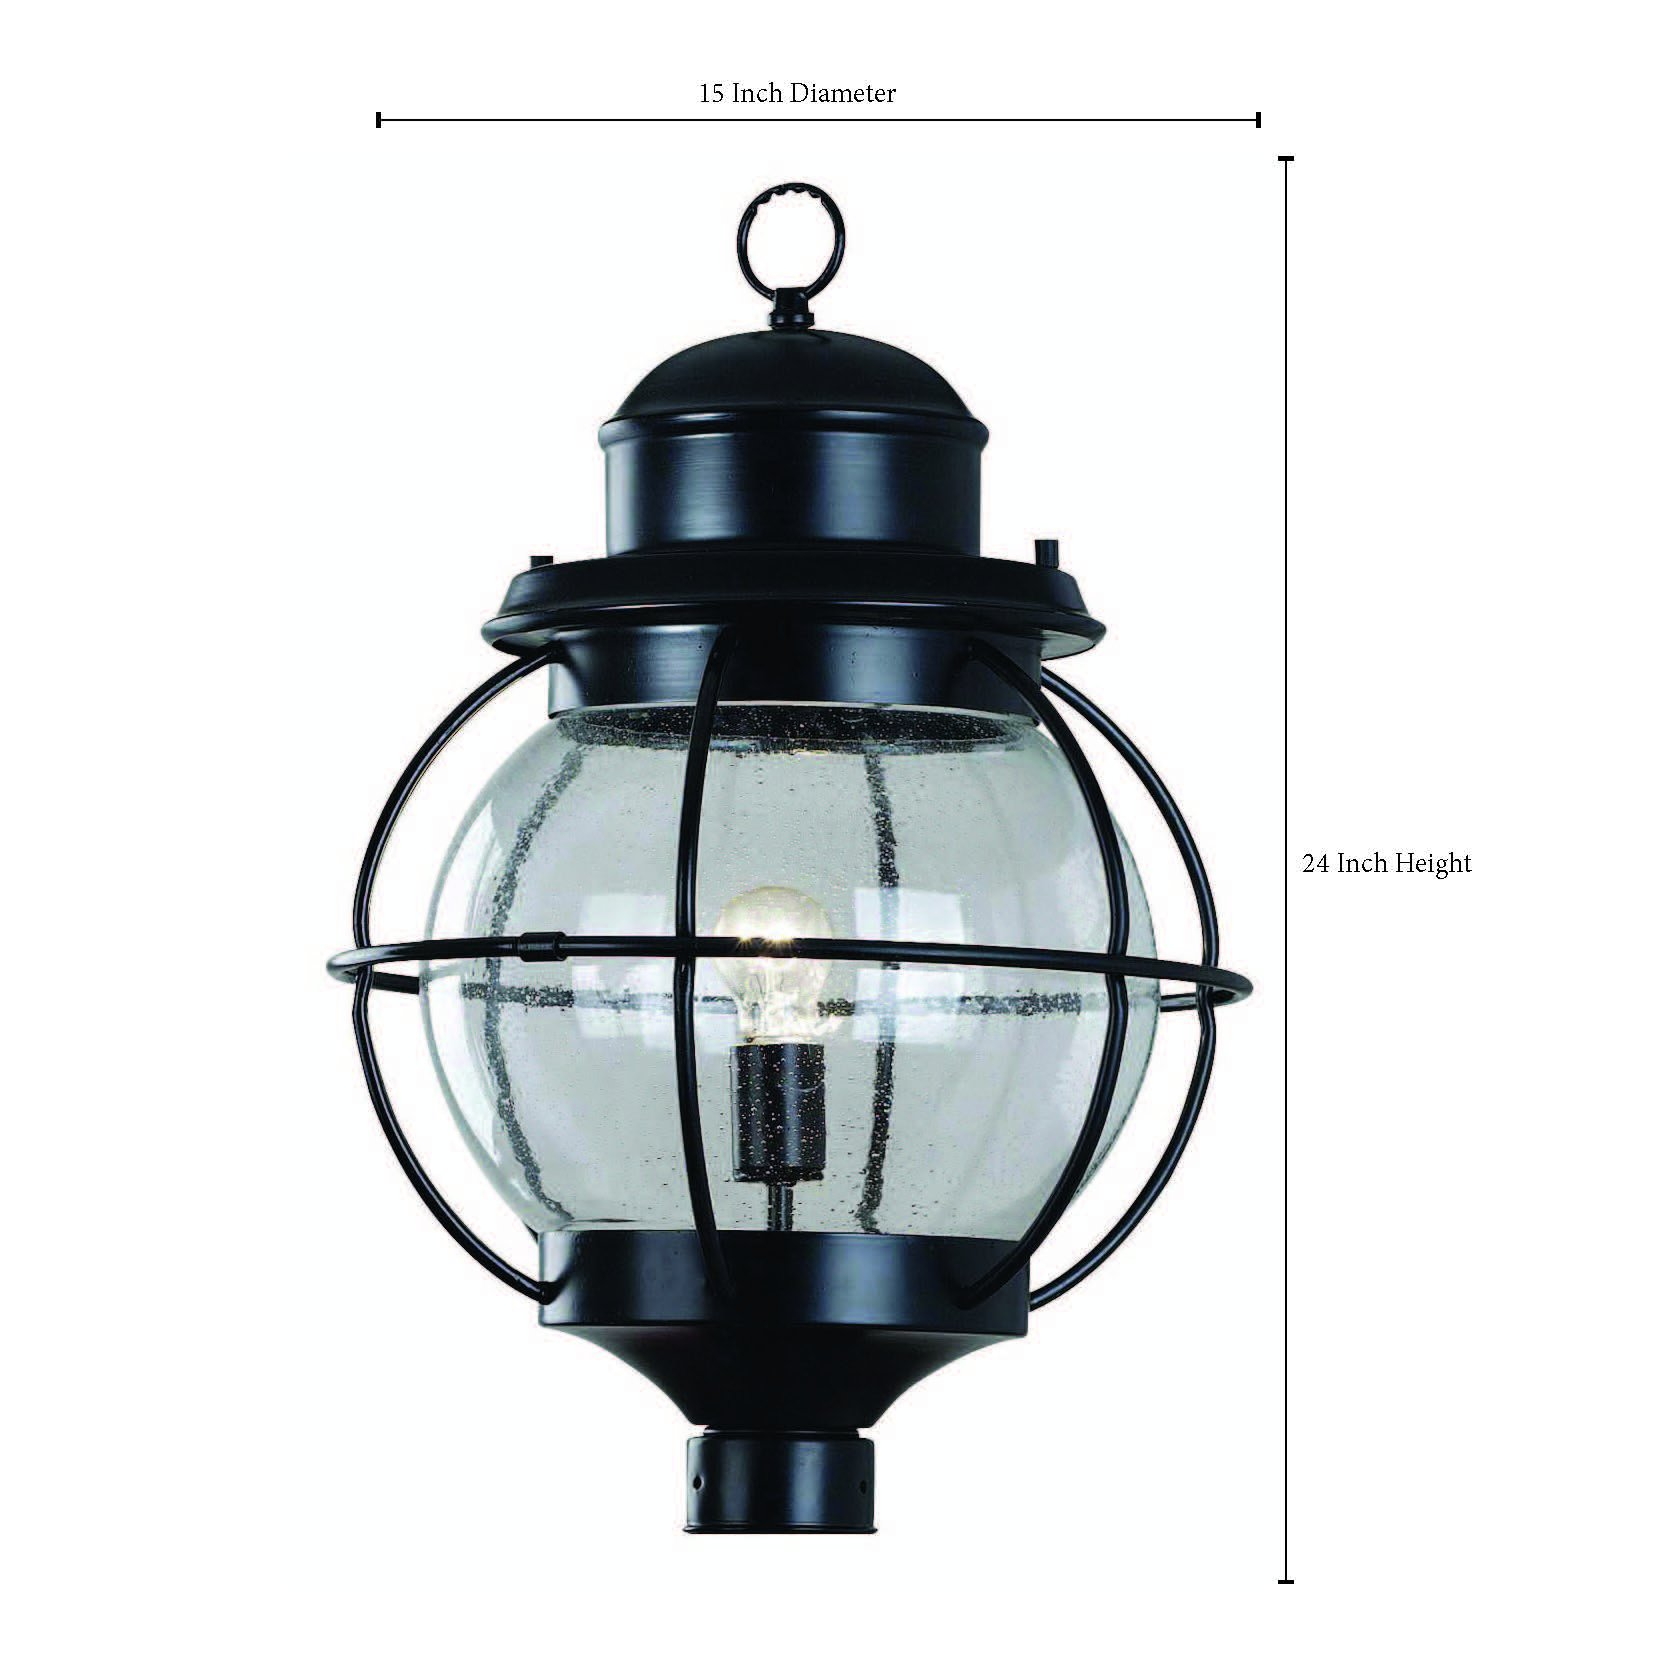 Kenroy Home 90967BL Hatteras 1-Light Post Lantern, Black by Kenroy Home